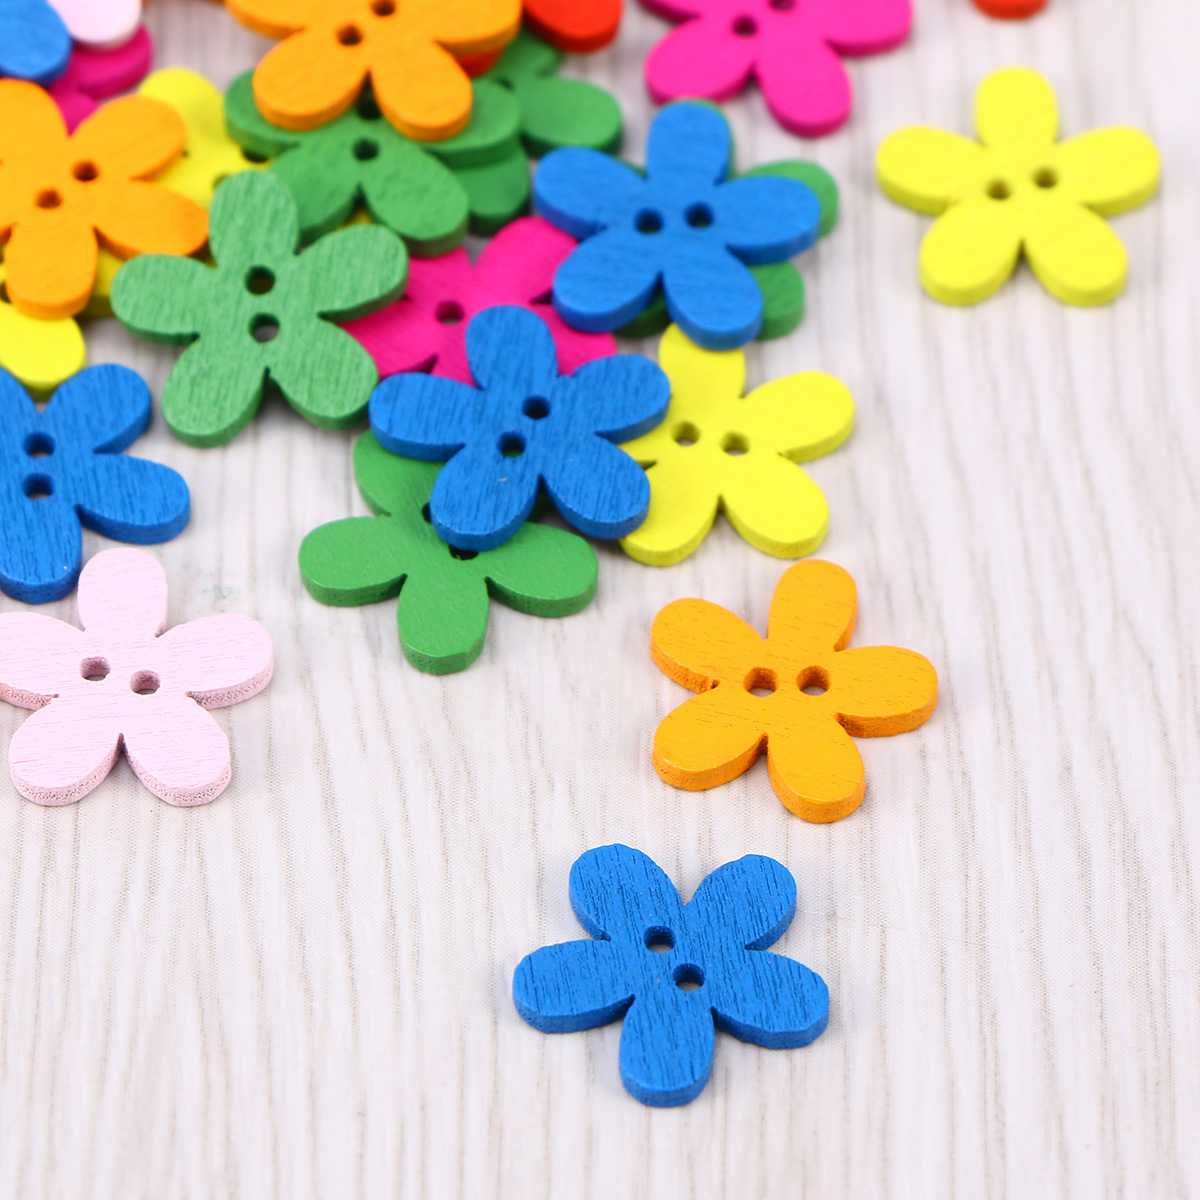 100Pc Cute Small Sunflower Buttons Wooden Buttons Sewing Scrapbooking Crafts